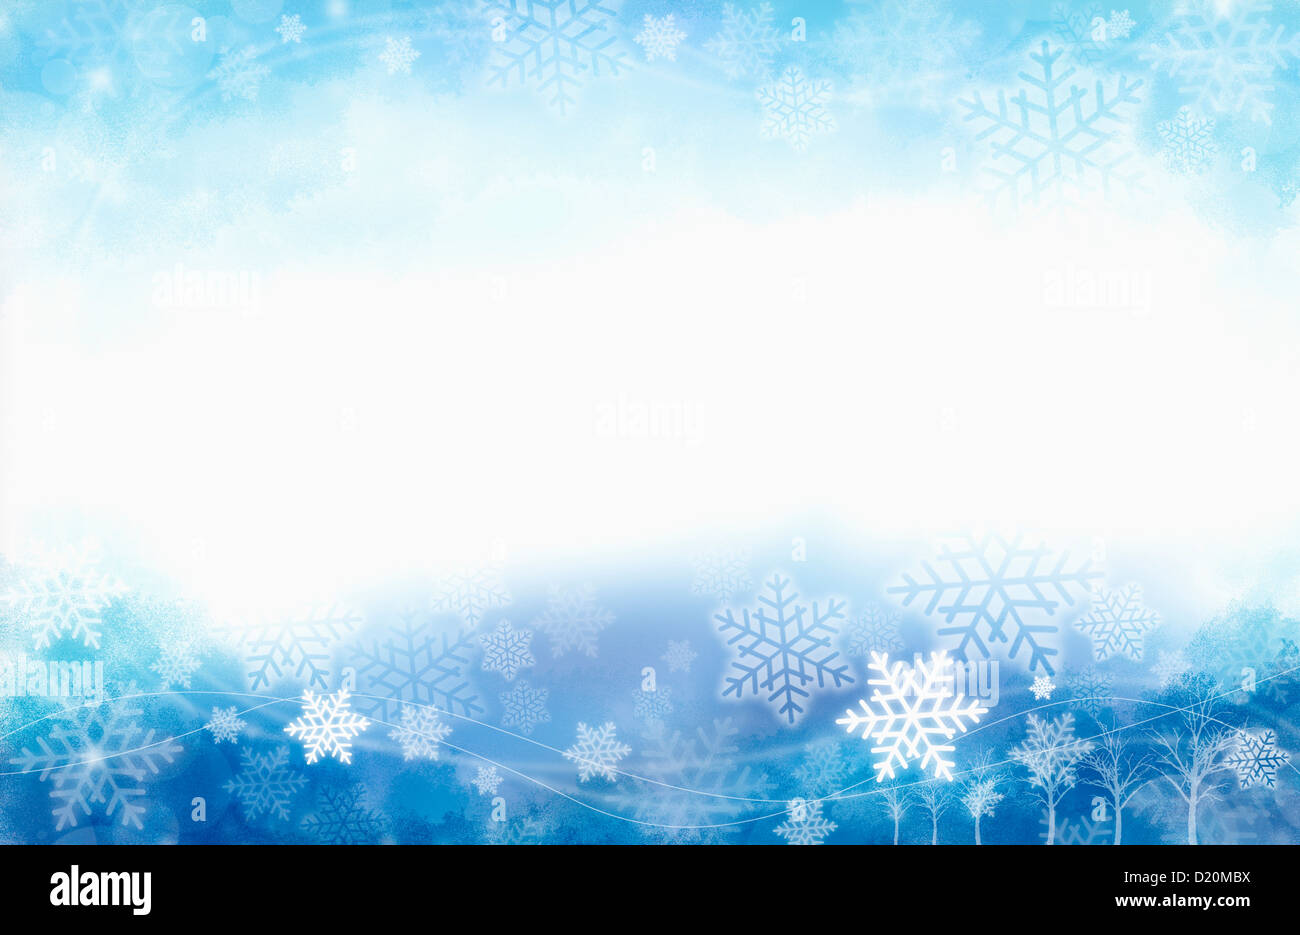 ppt background template winter stock photos ppt background